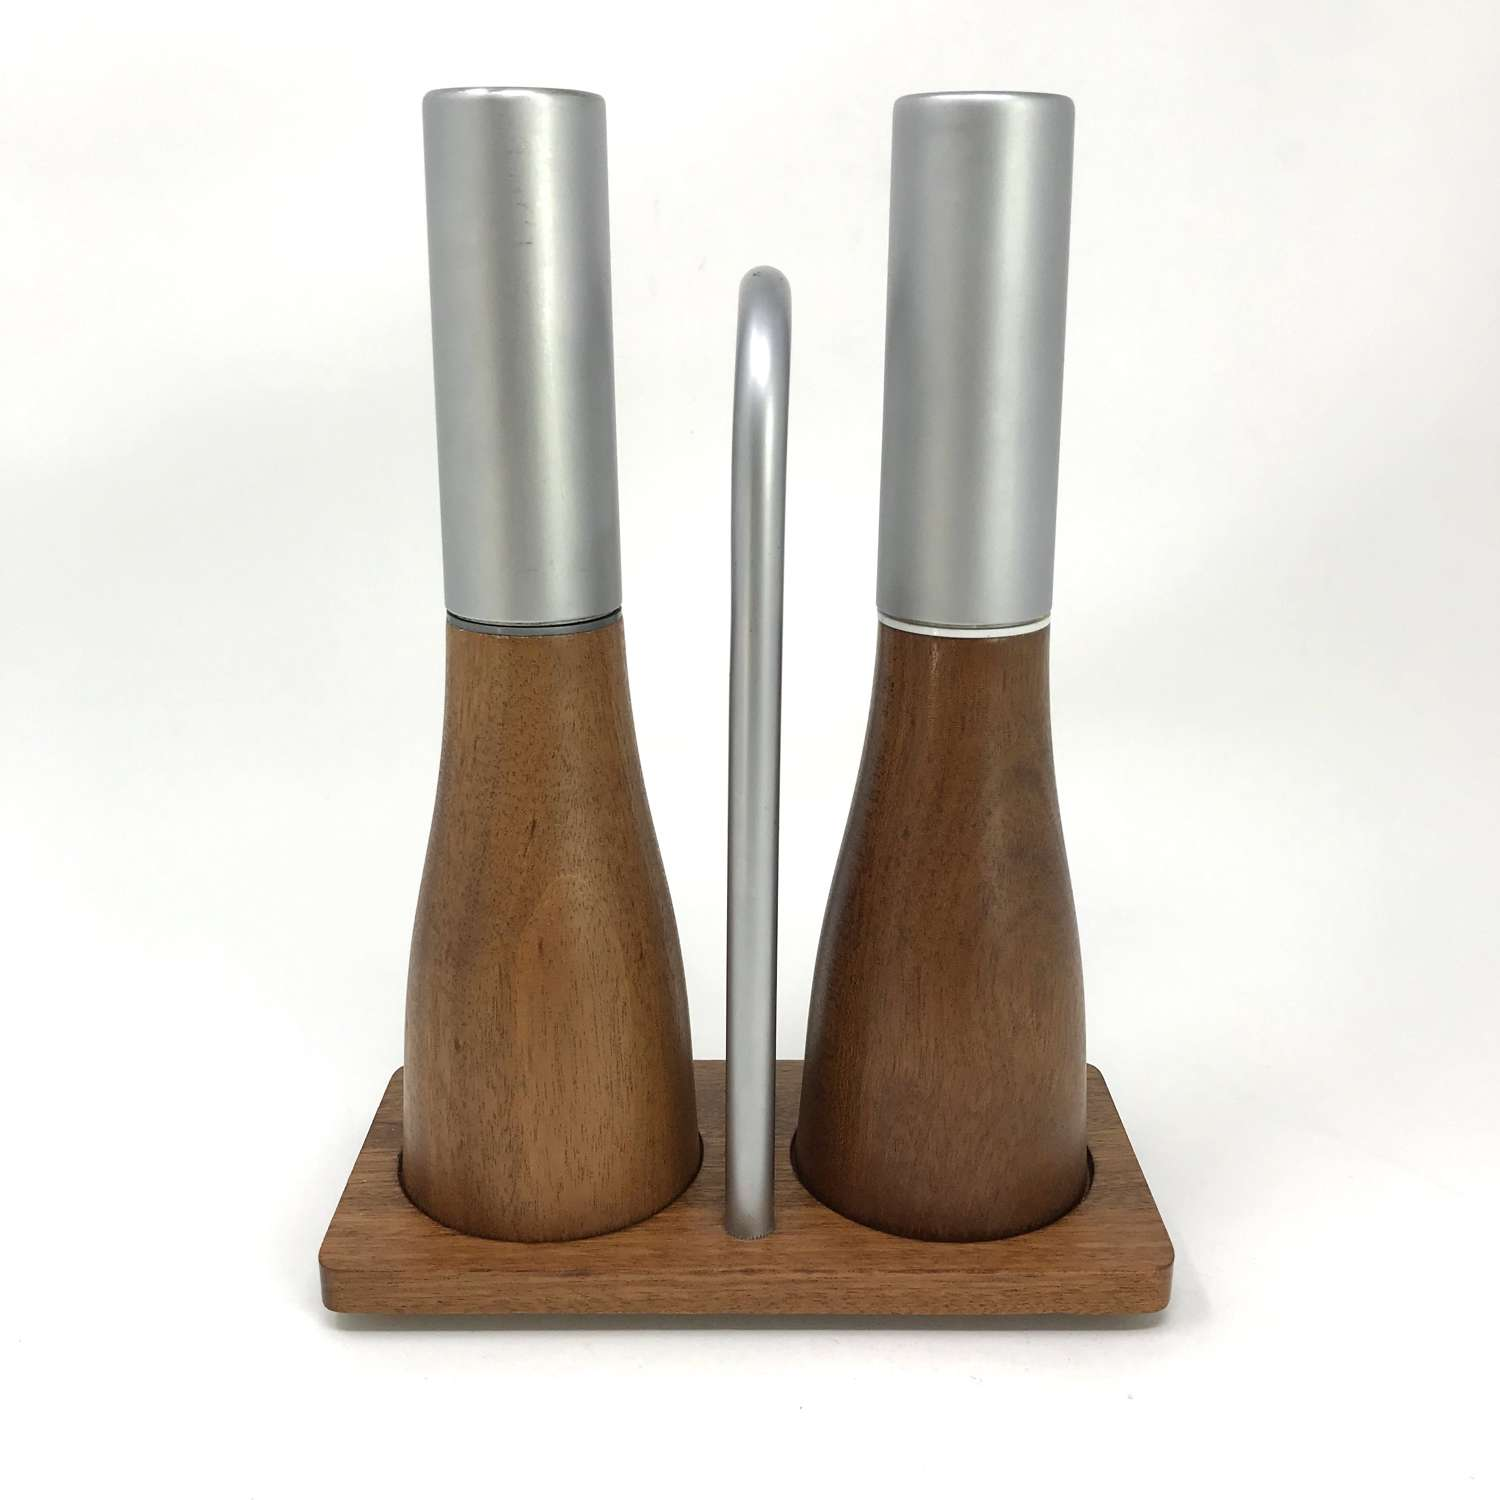 Georg Fontana Bodum salt and Pepper mills with tray Denmark 1990s